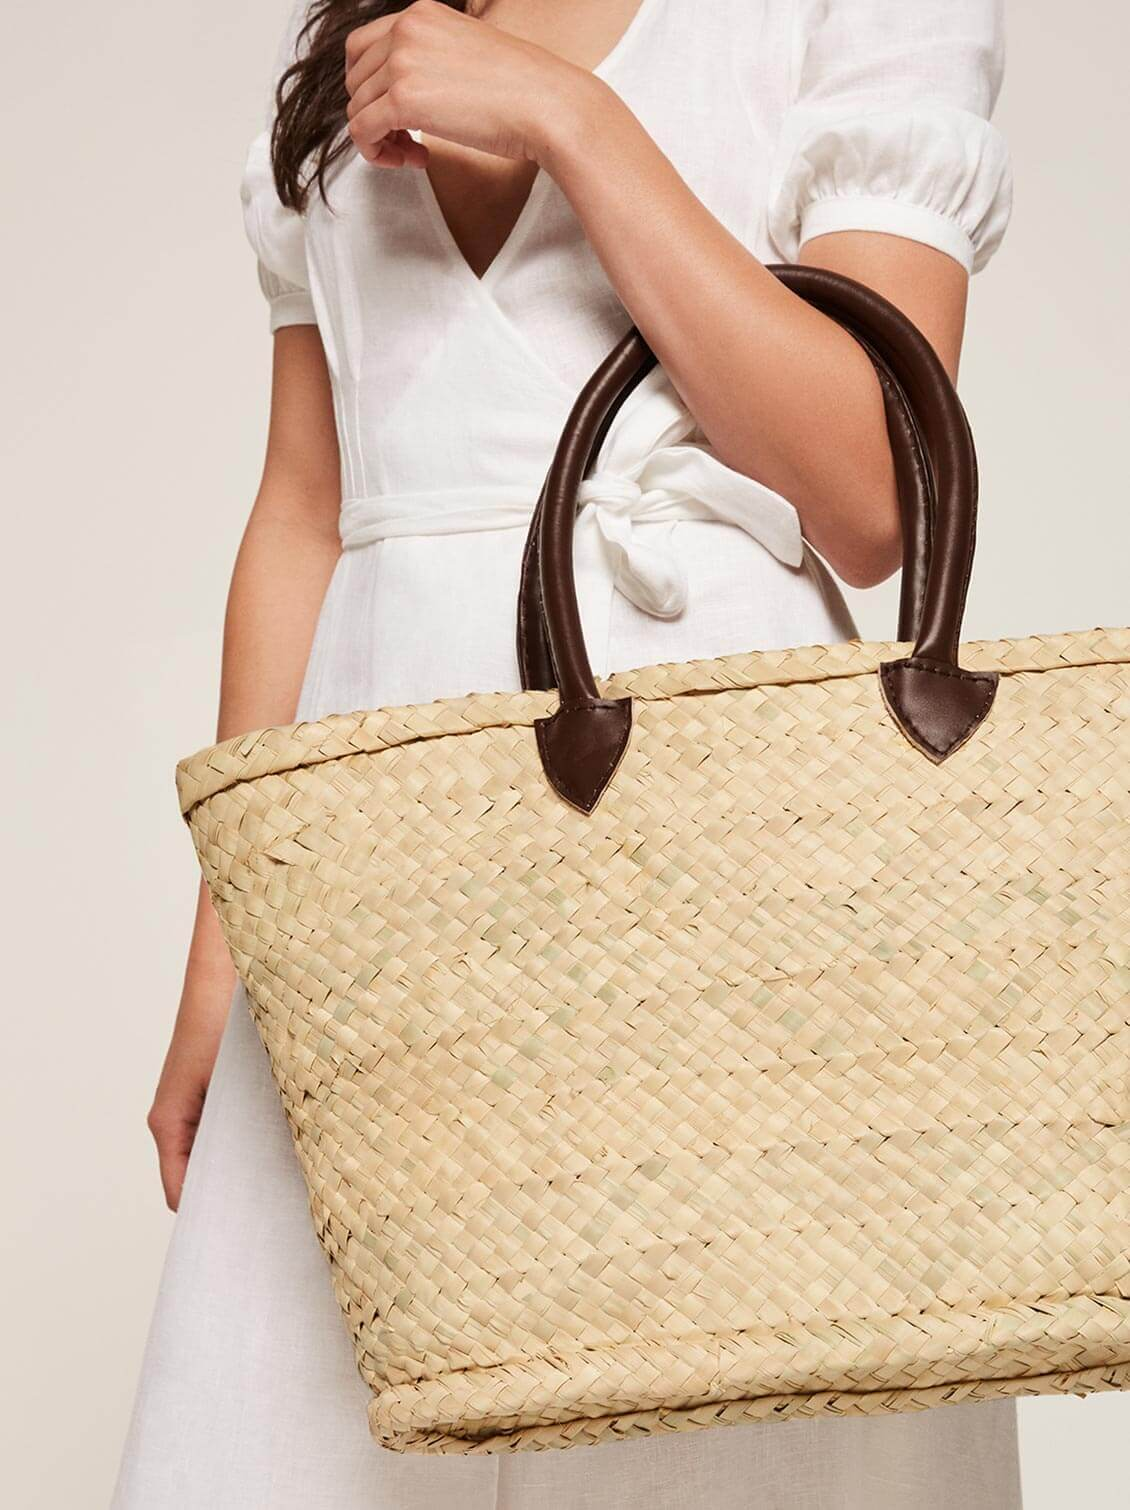 Reformation straw tote bag